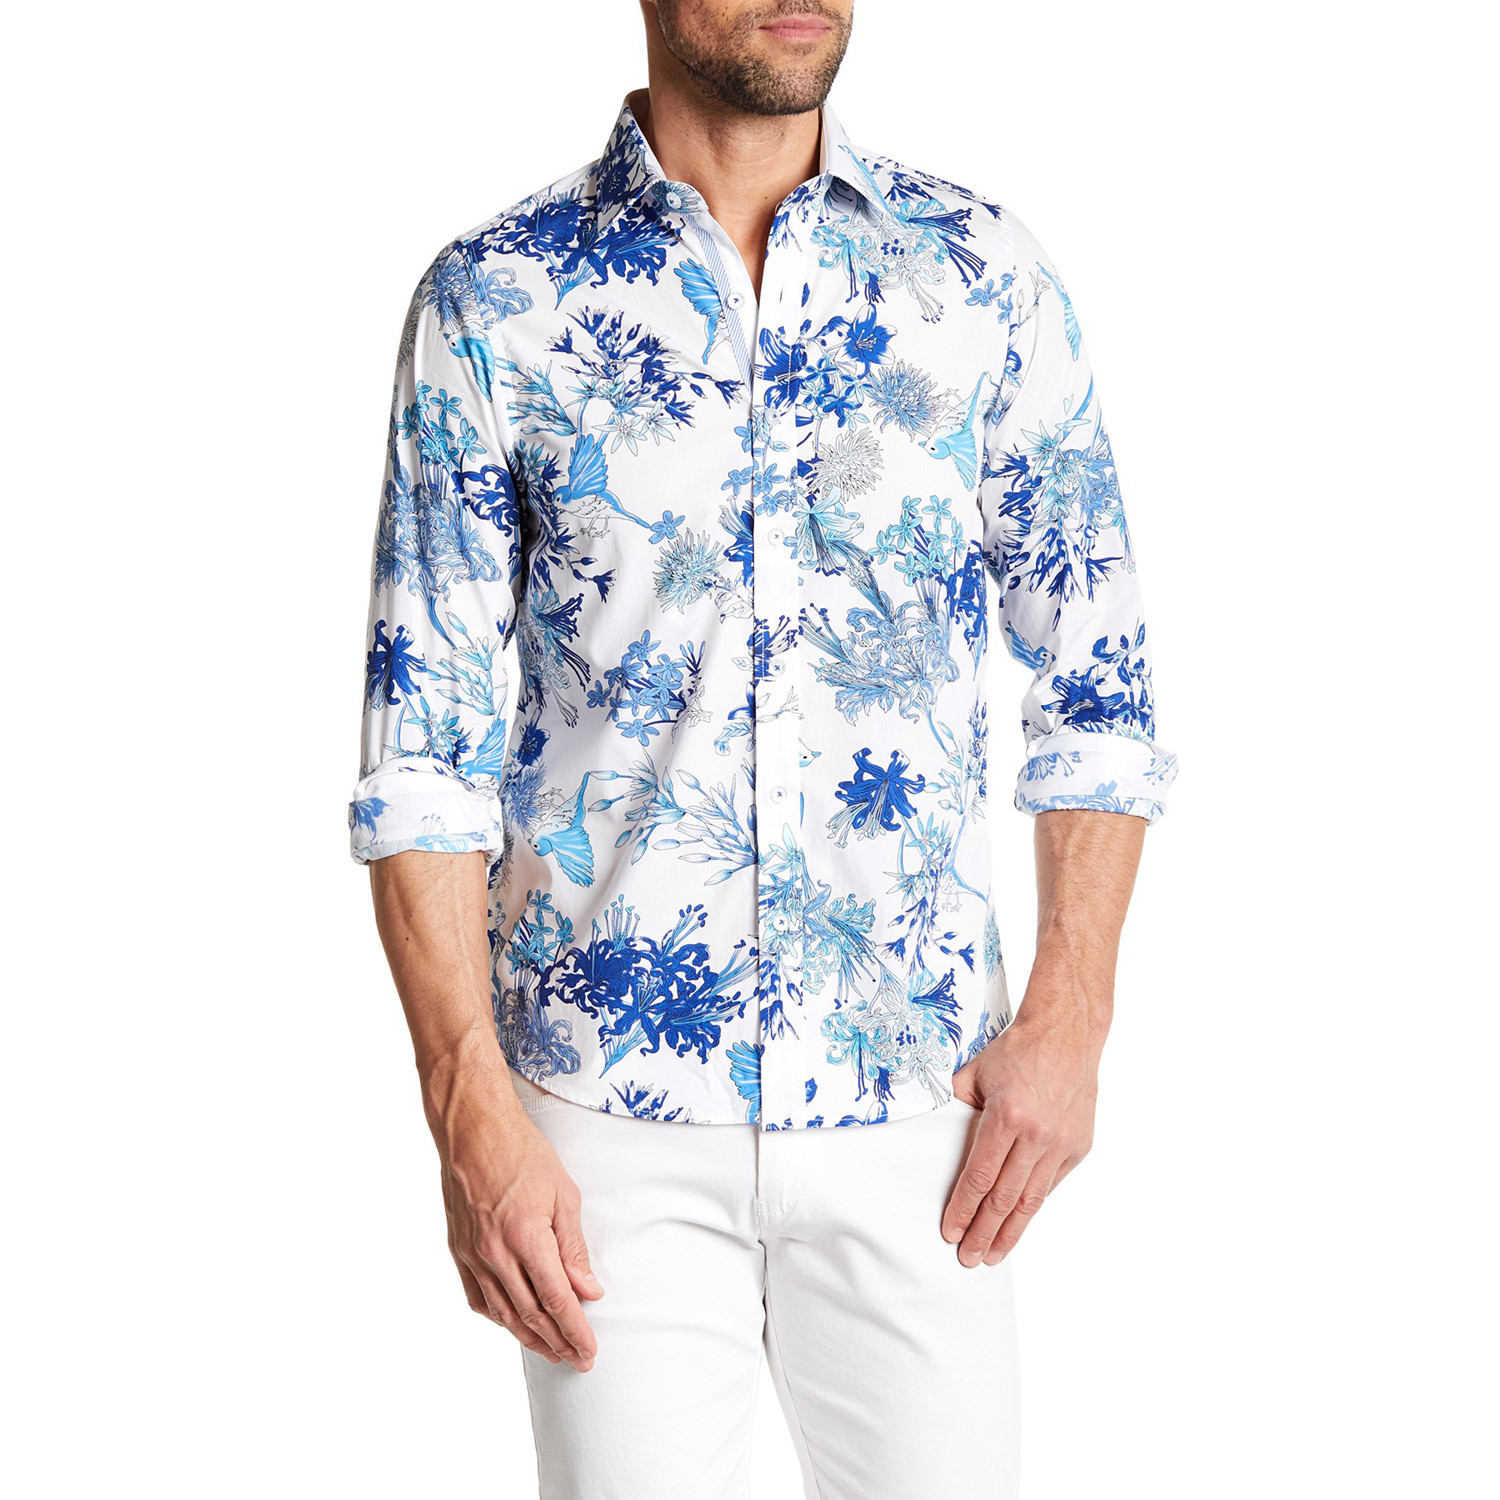 Ukiyo e floral button up shirt royal xs tr premium for Royals button up shirt